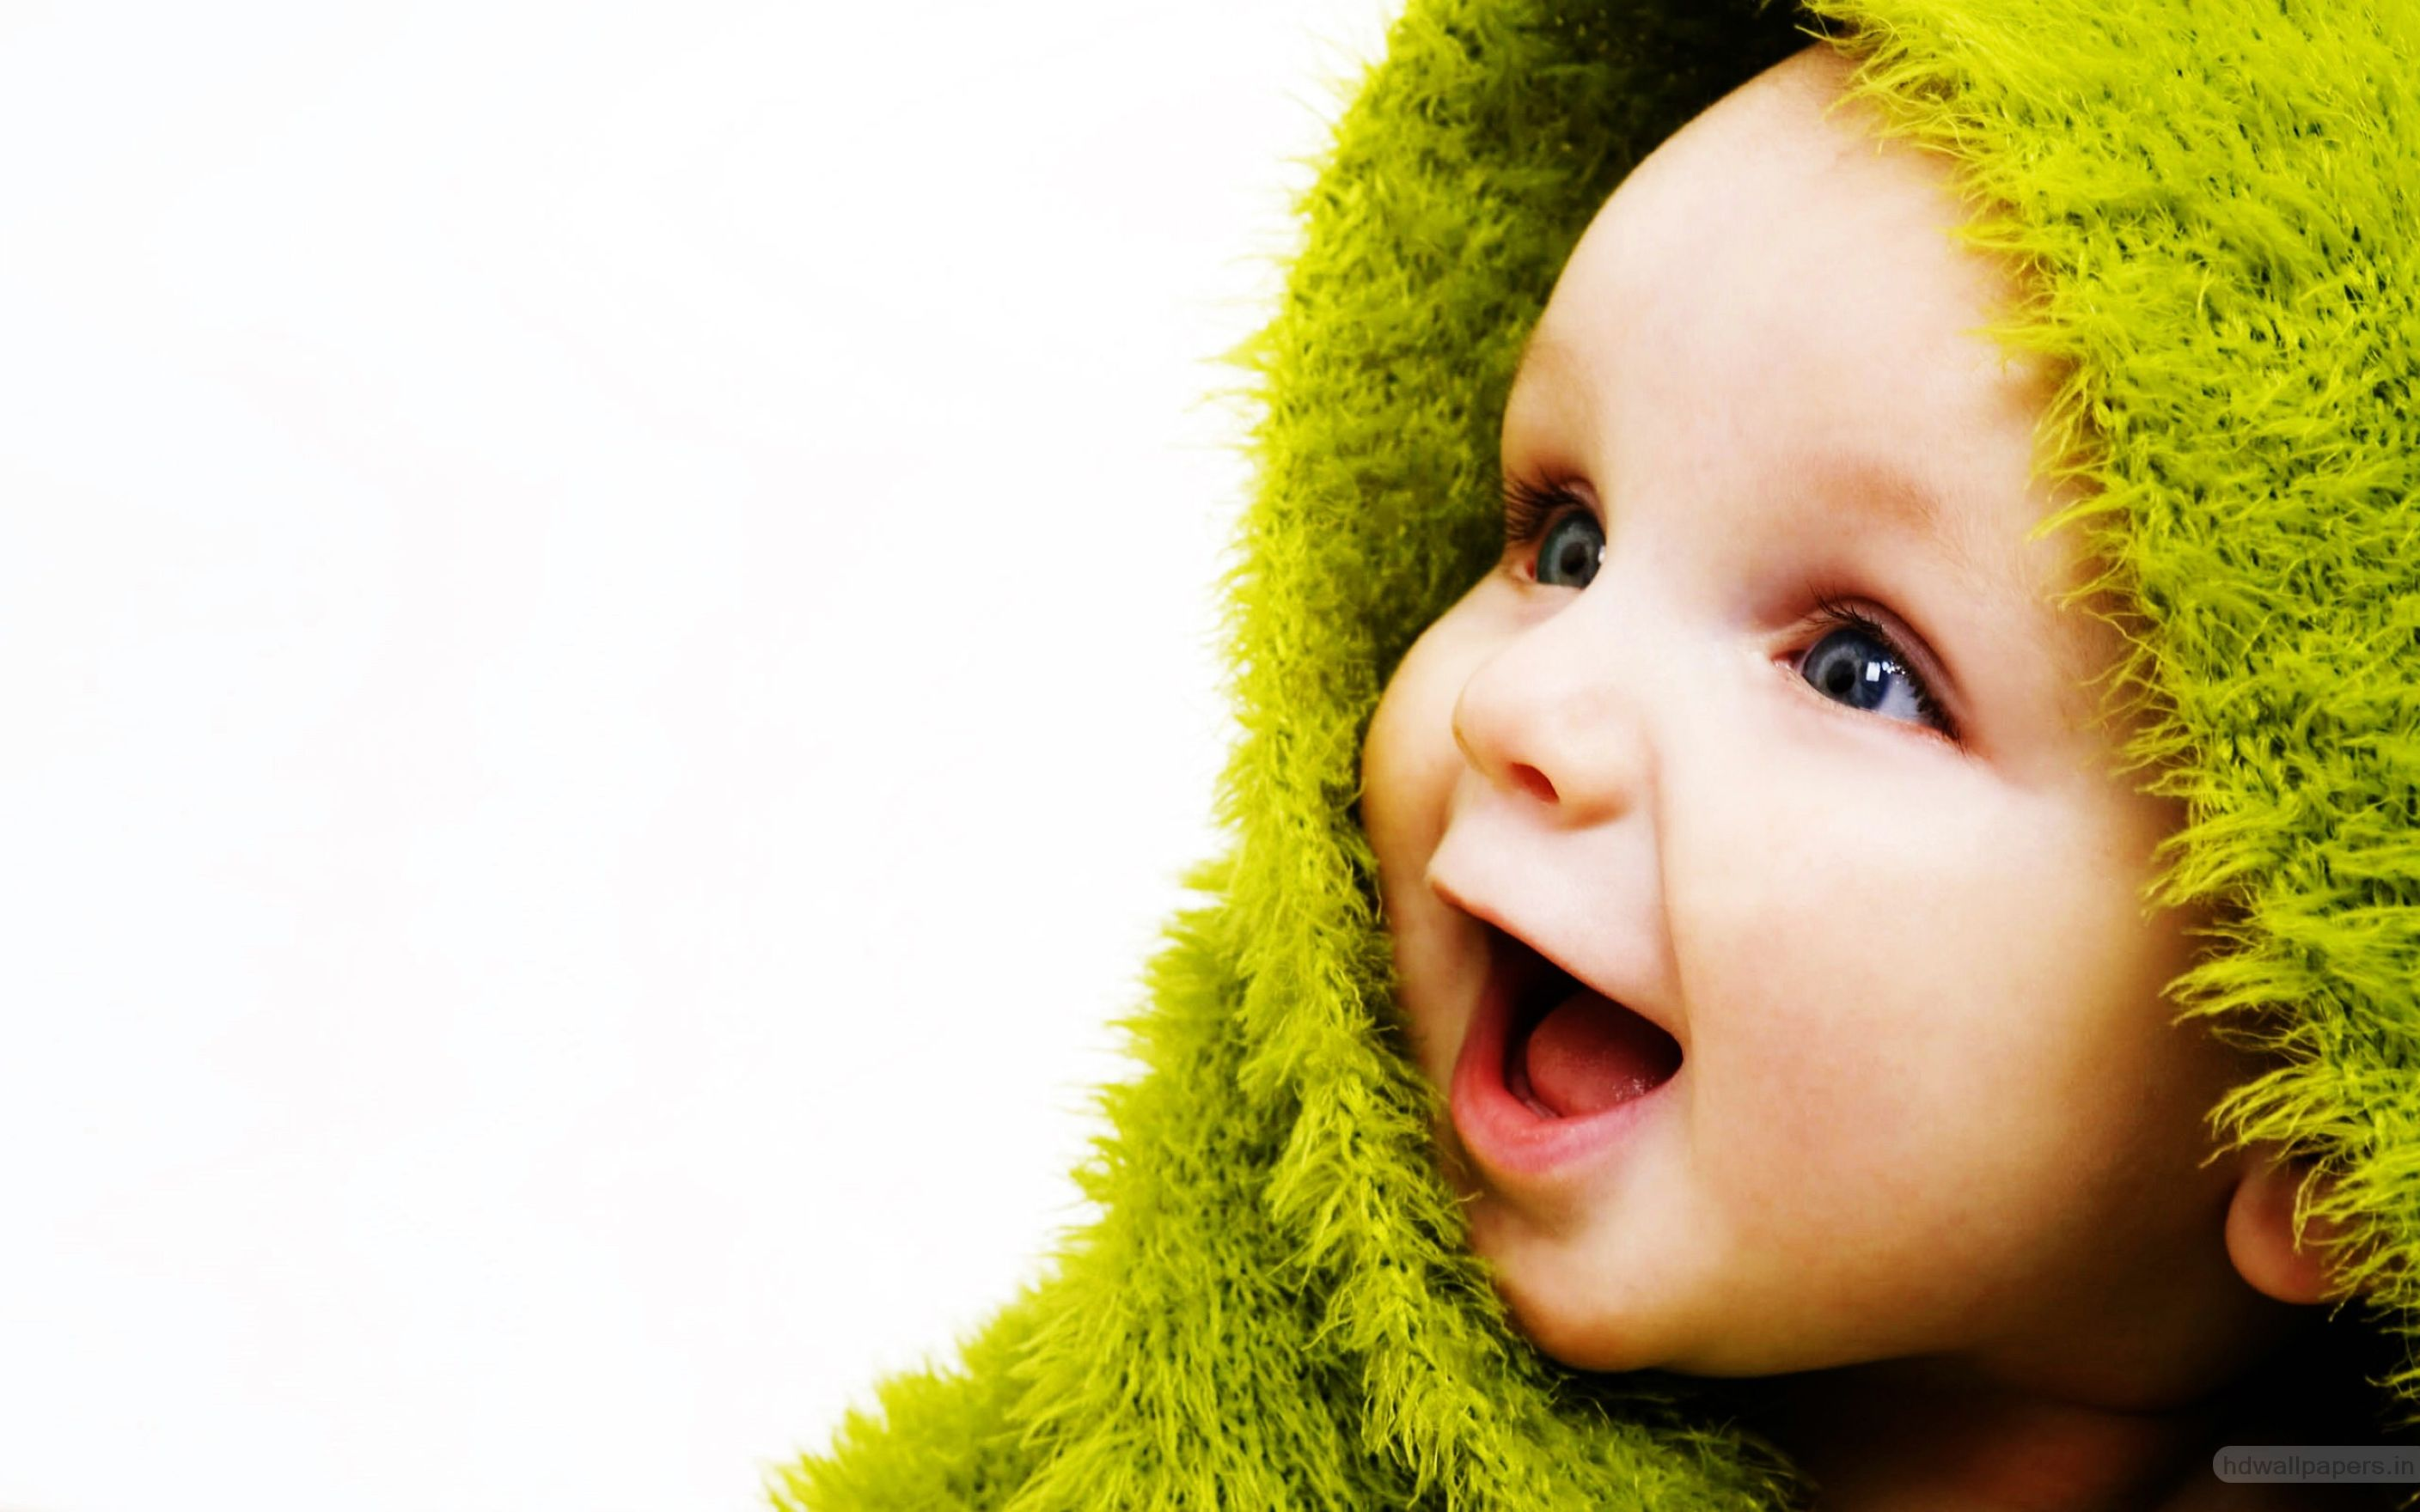 little cute baby wide wallpaper: desktop hd wallpaper - download